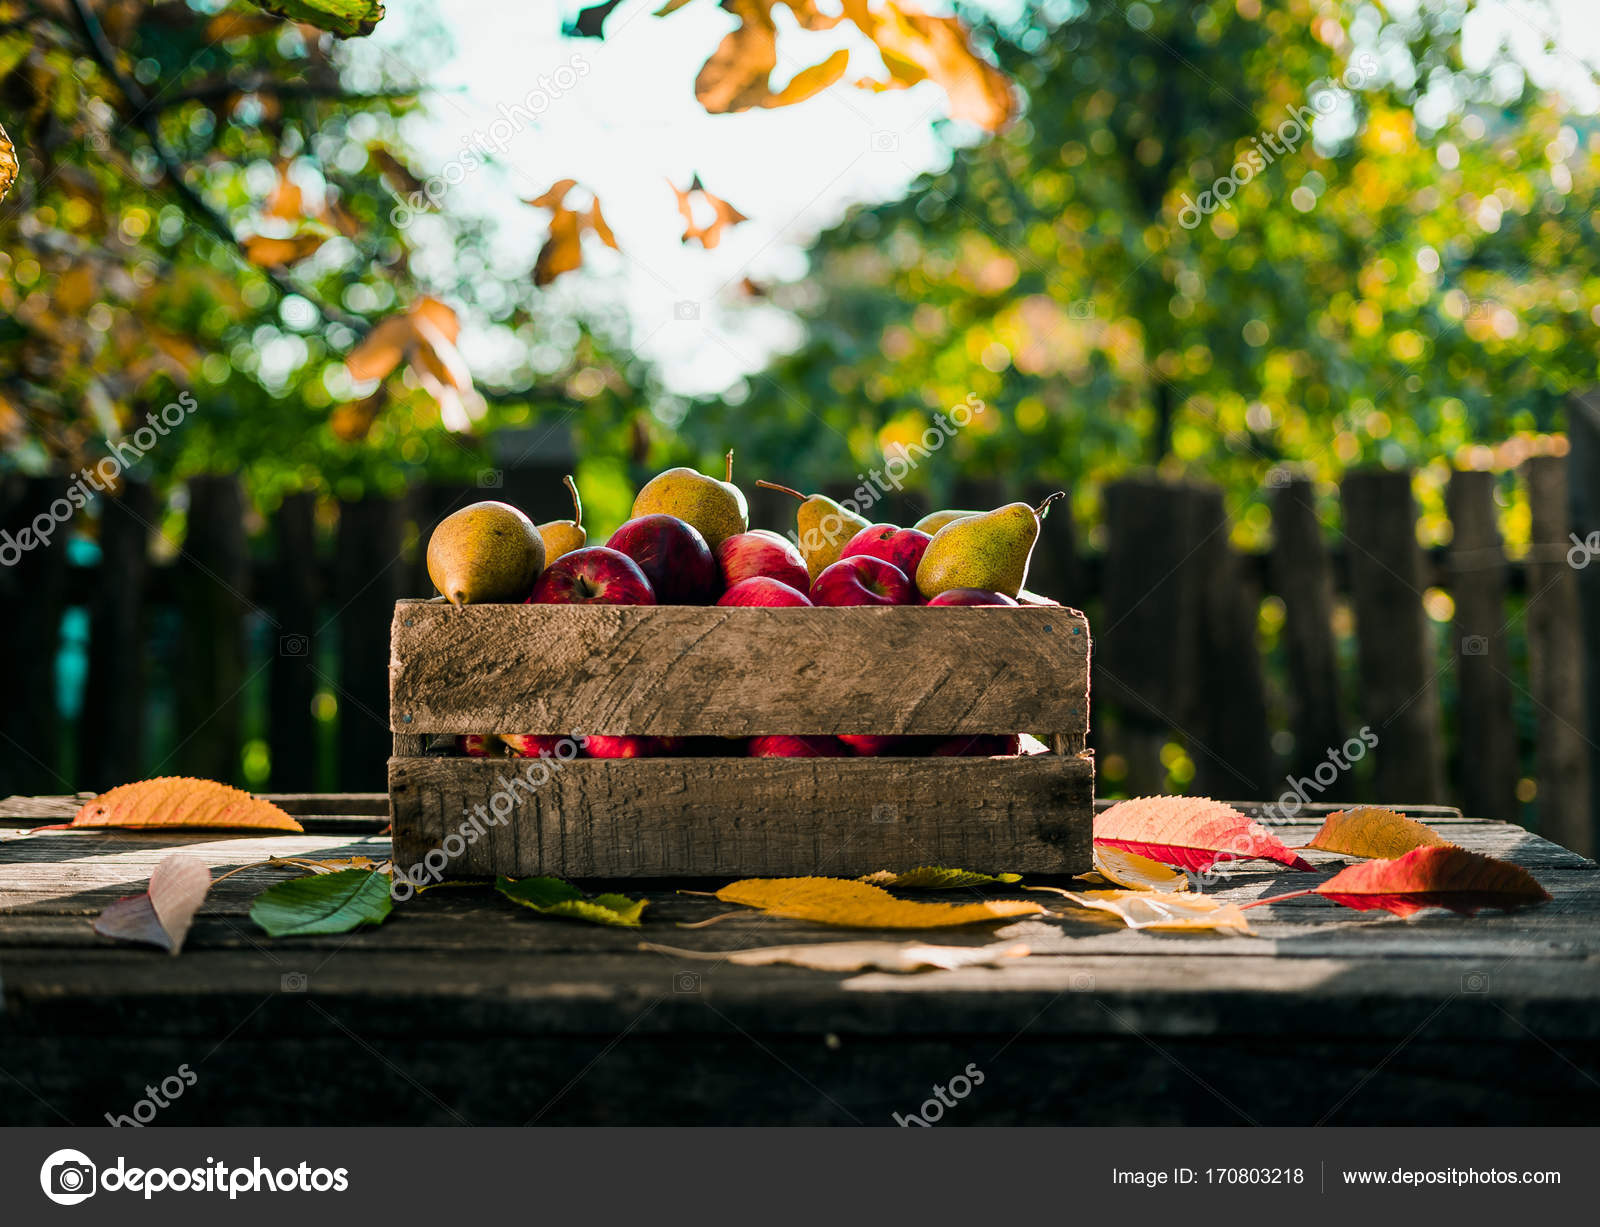 outdoor woods backgrounds. Fine Backgrounds Autumn Pears On Old Wood Table In Outdoor Backgrounds U2014 Photo By Elijah_sad Throughout Outdoor Woods Backgrounds